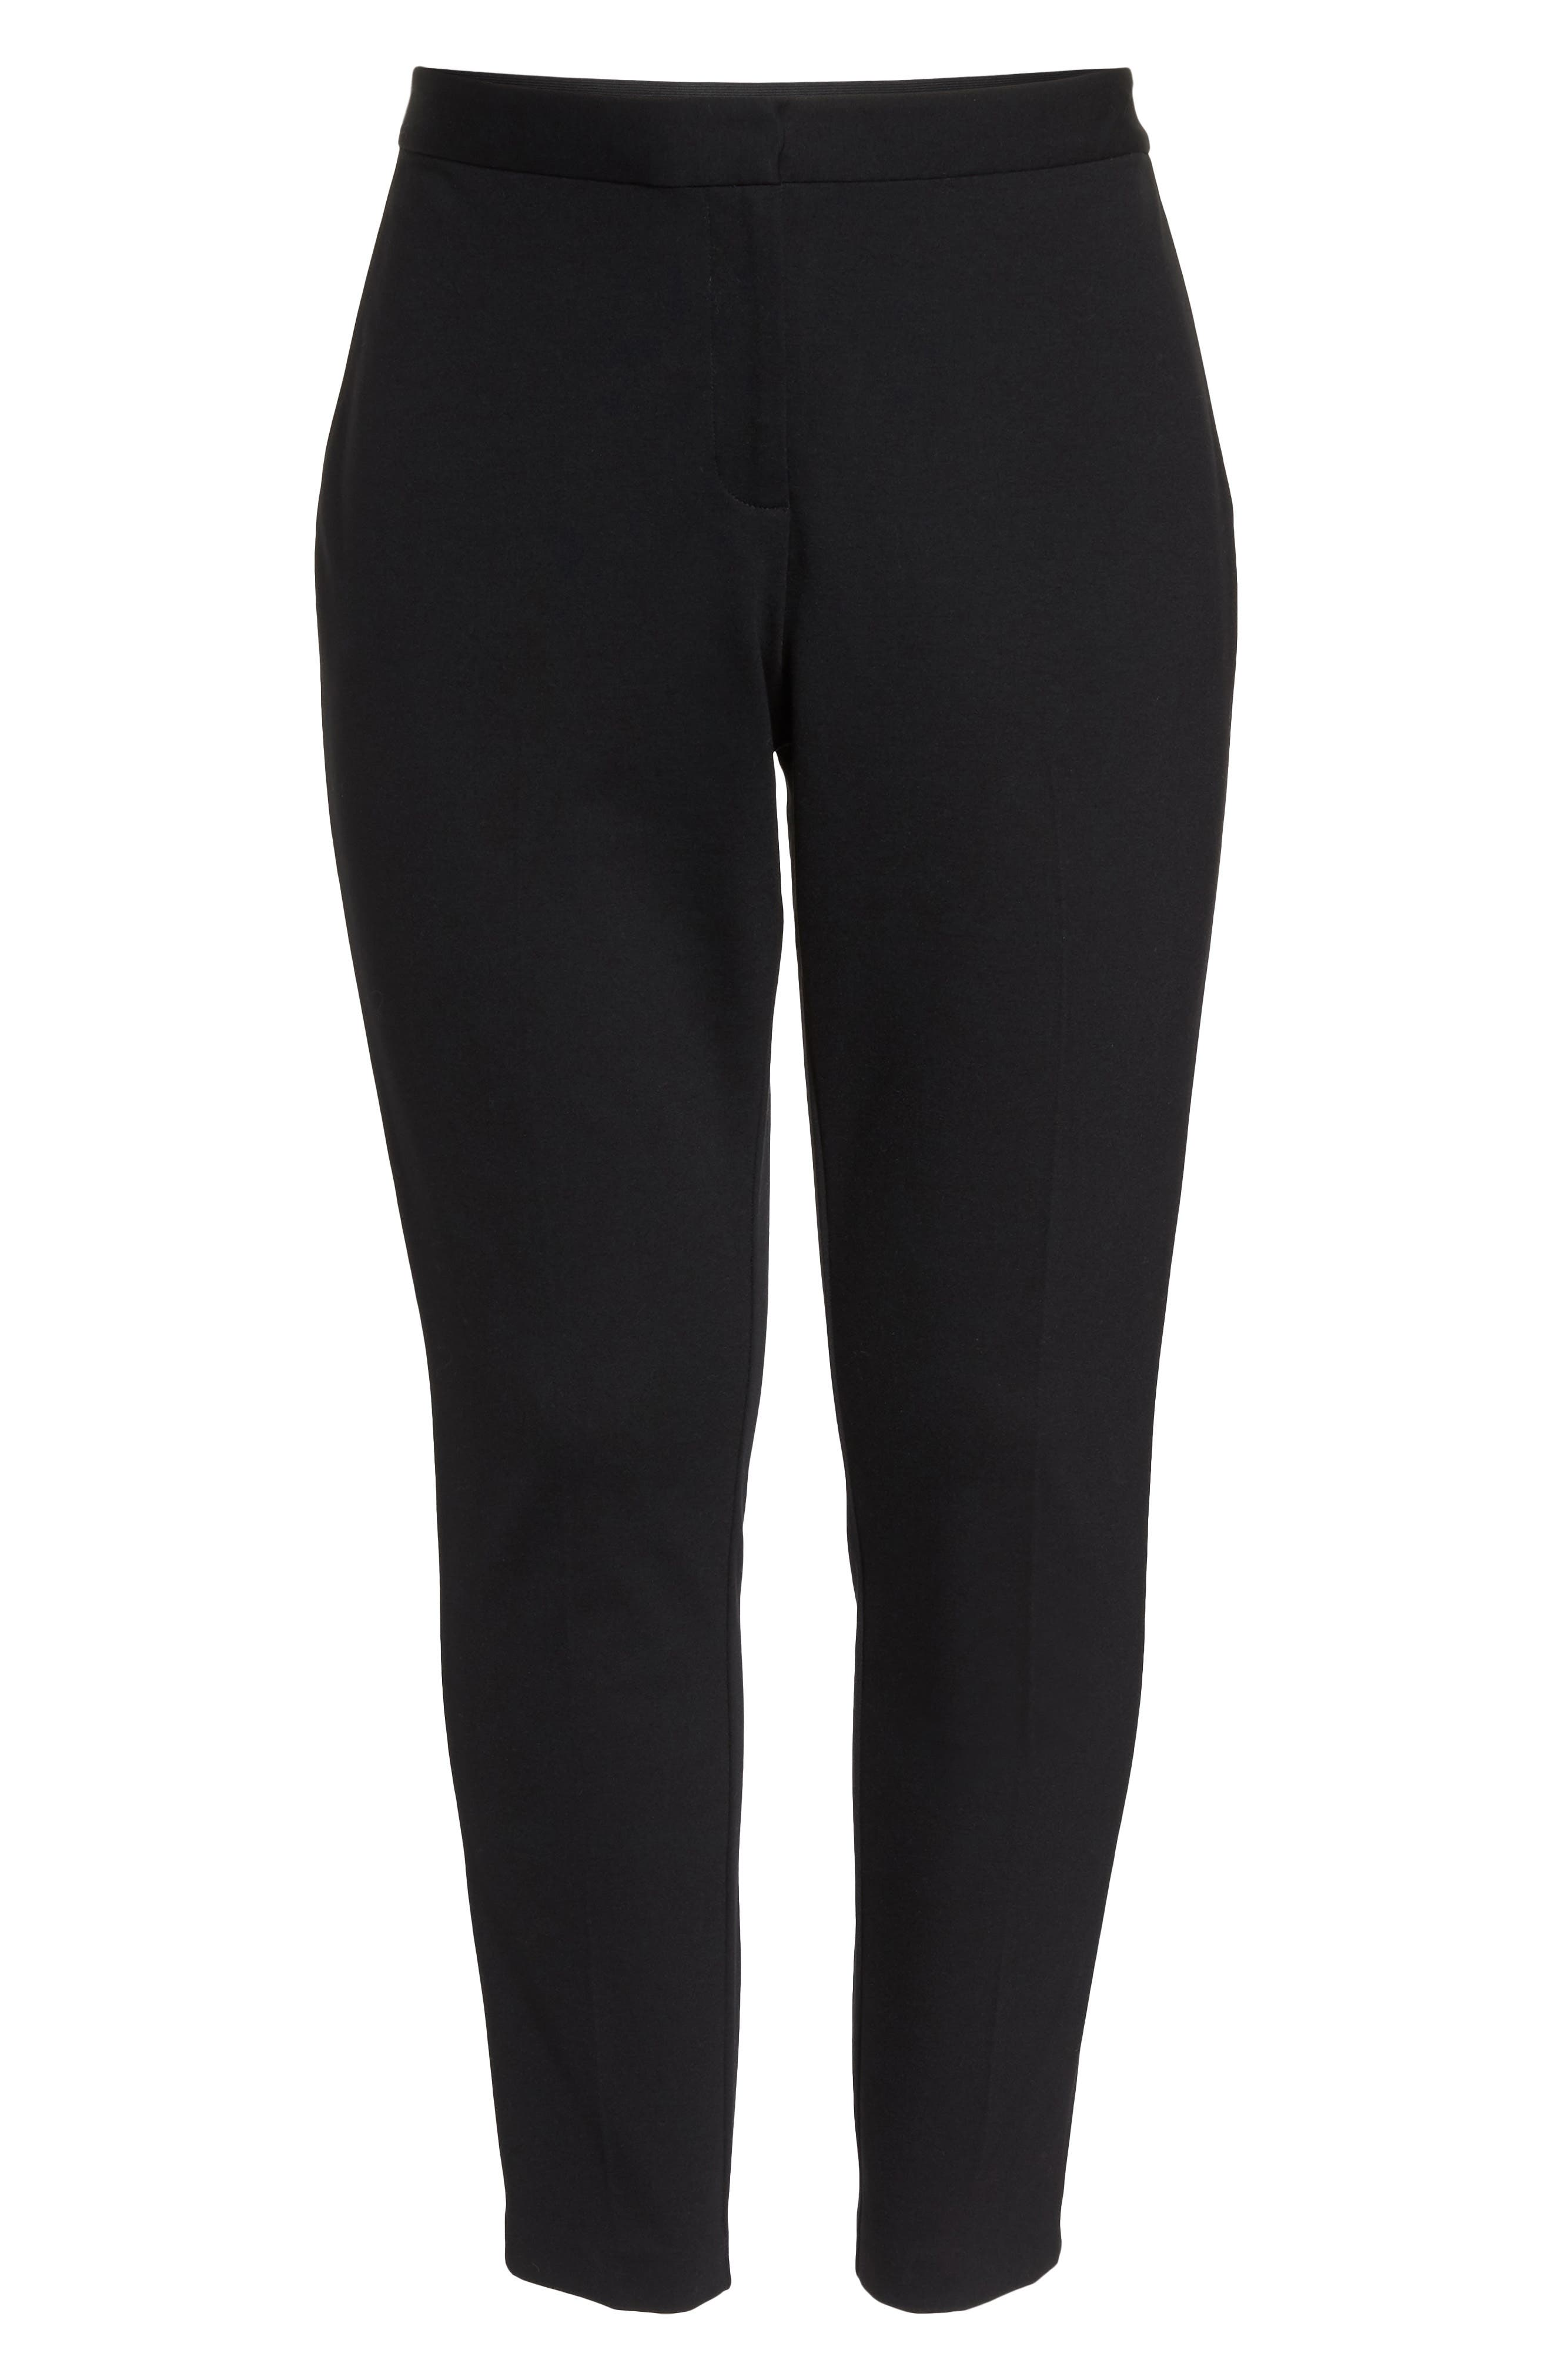 VINCE CAMUTO, High Rise Ankle Skinny Ponte Pants, Alternate thumbnail 7, color, RICH BLACK